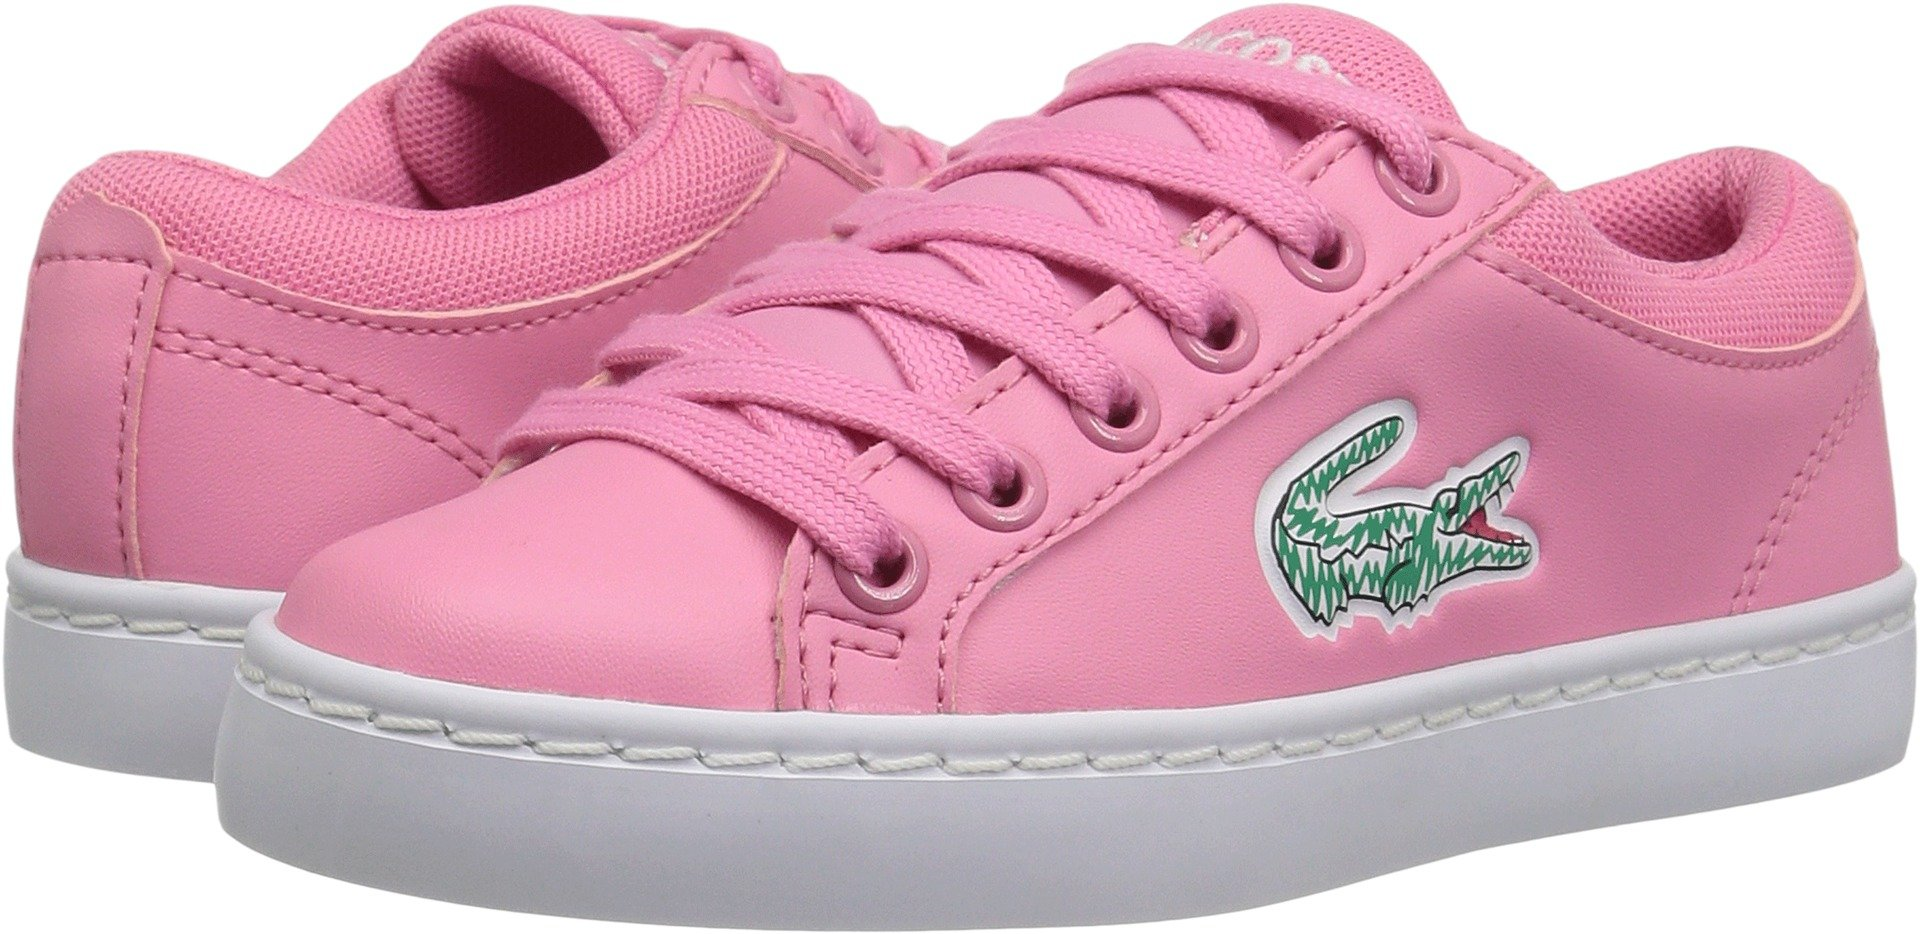 Lacoste Kids' Straightset Lace